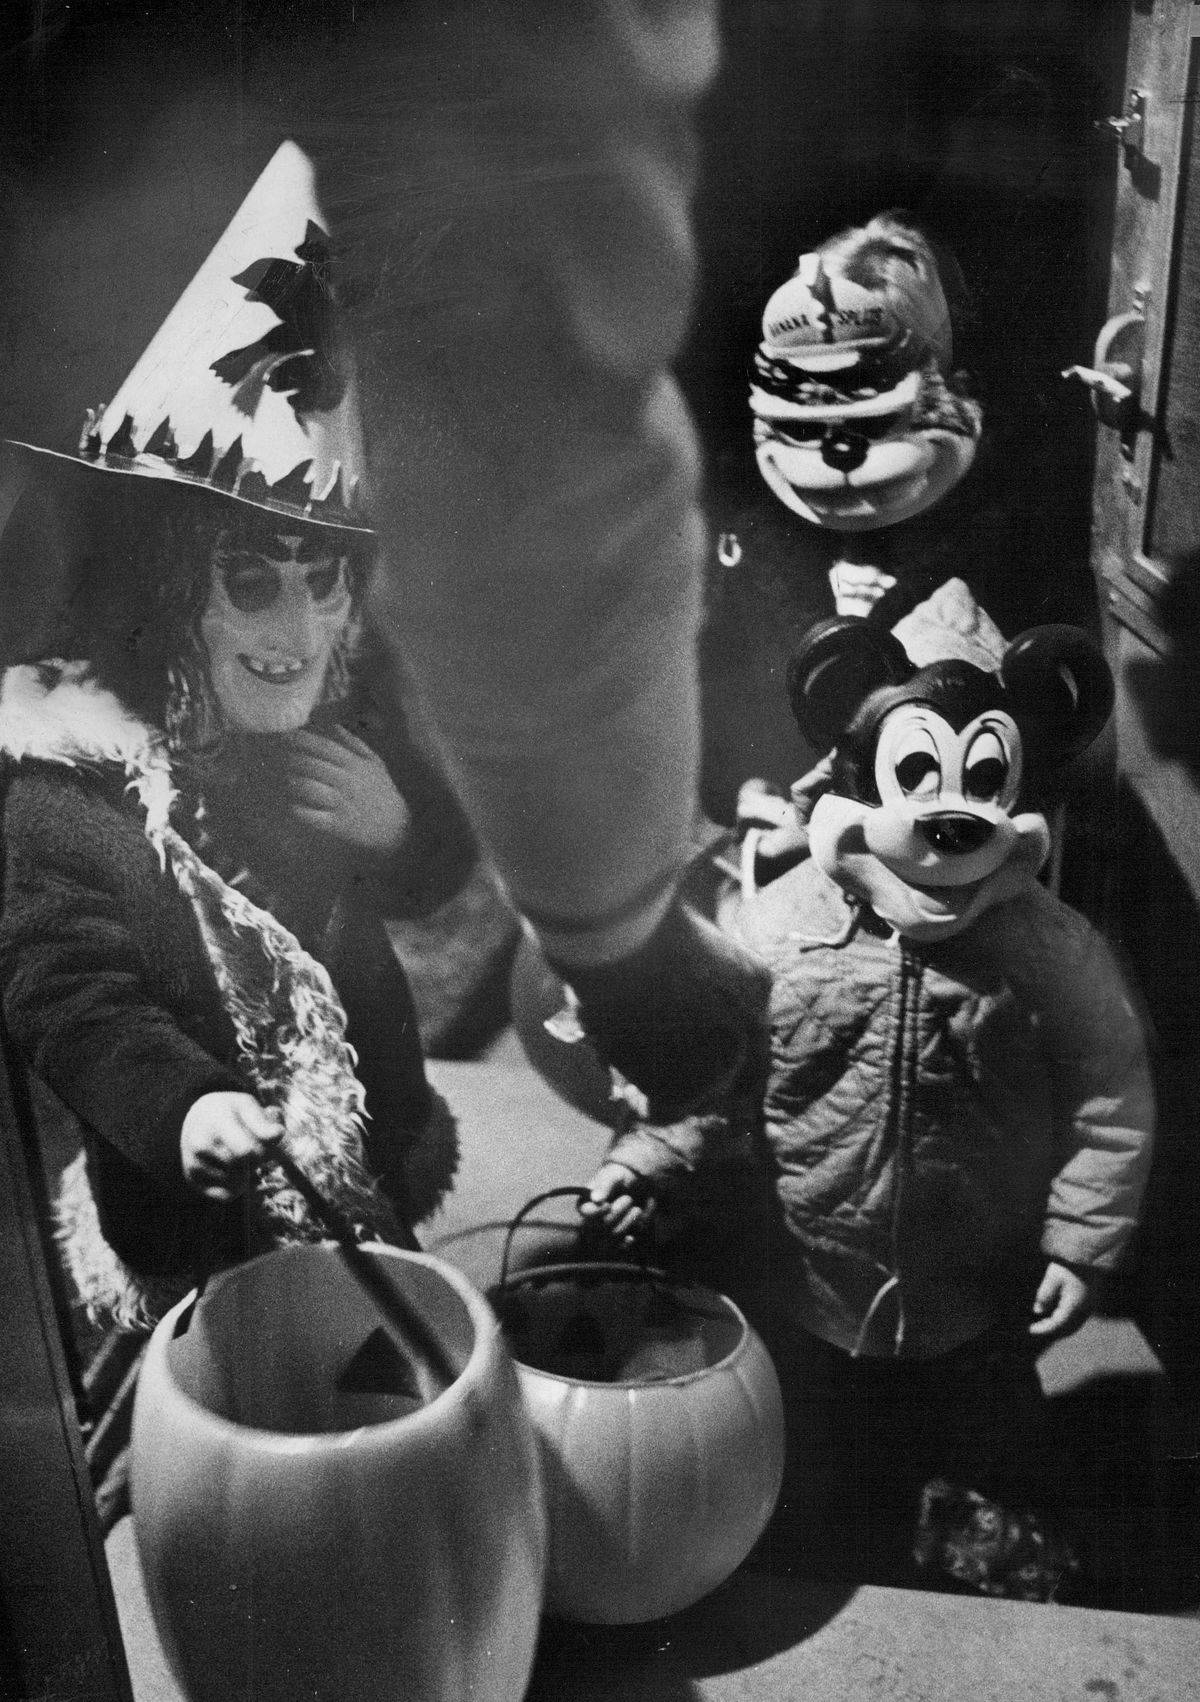 A small group of children wear costumes and masks and walk house to house trick-or-treating on Halloween